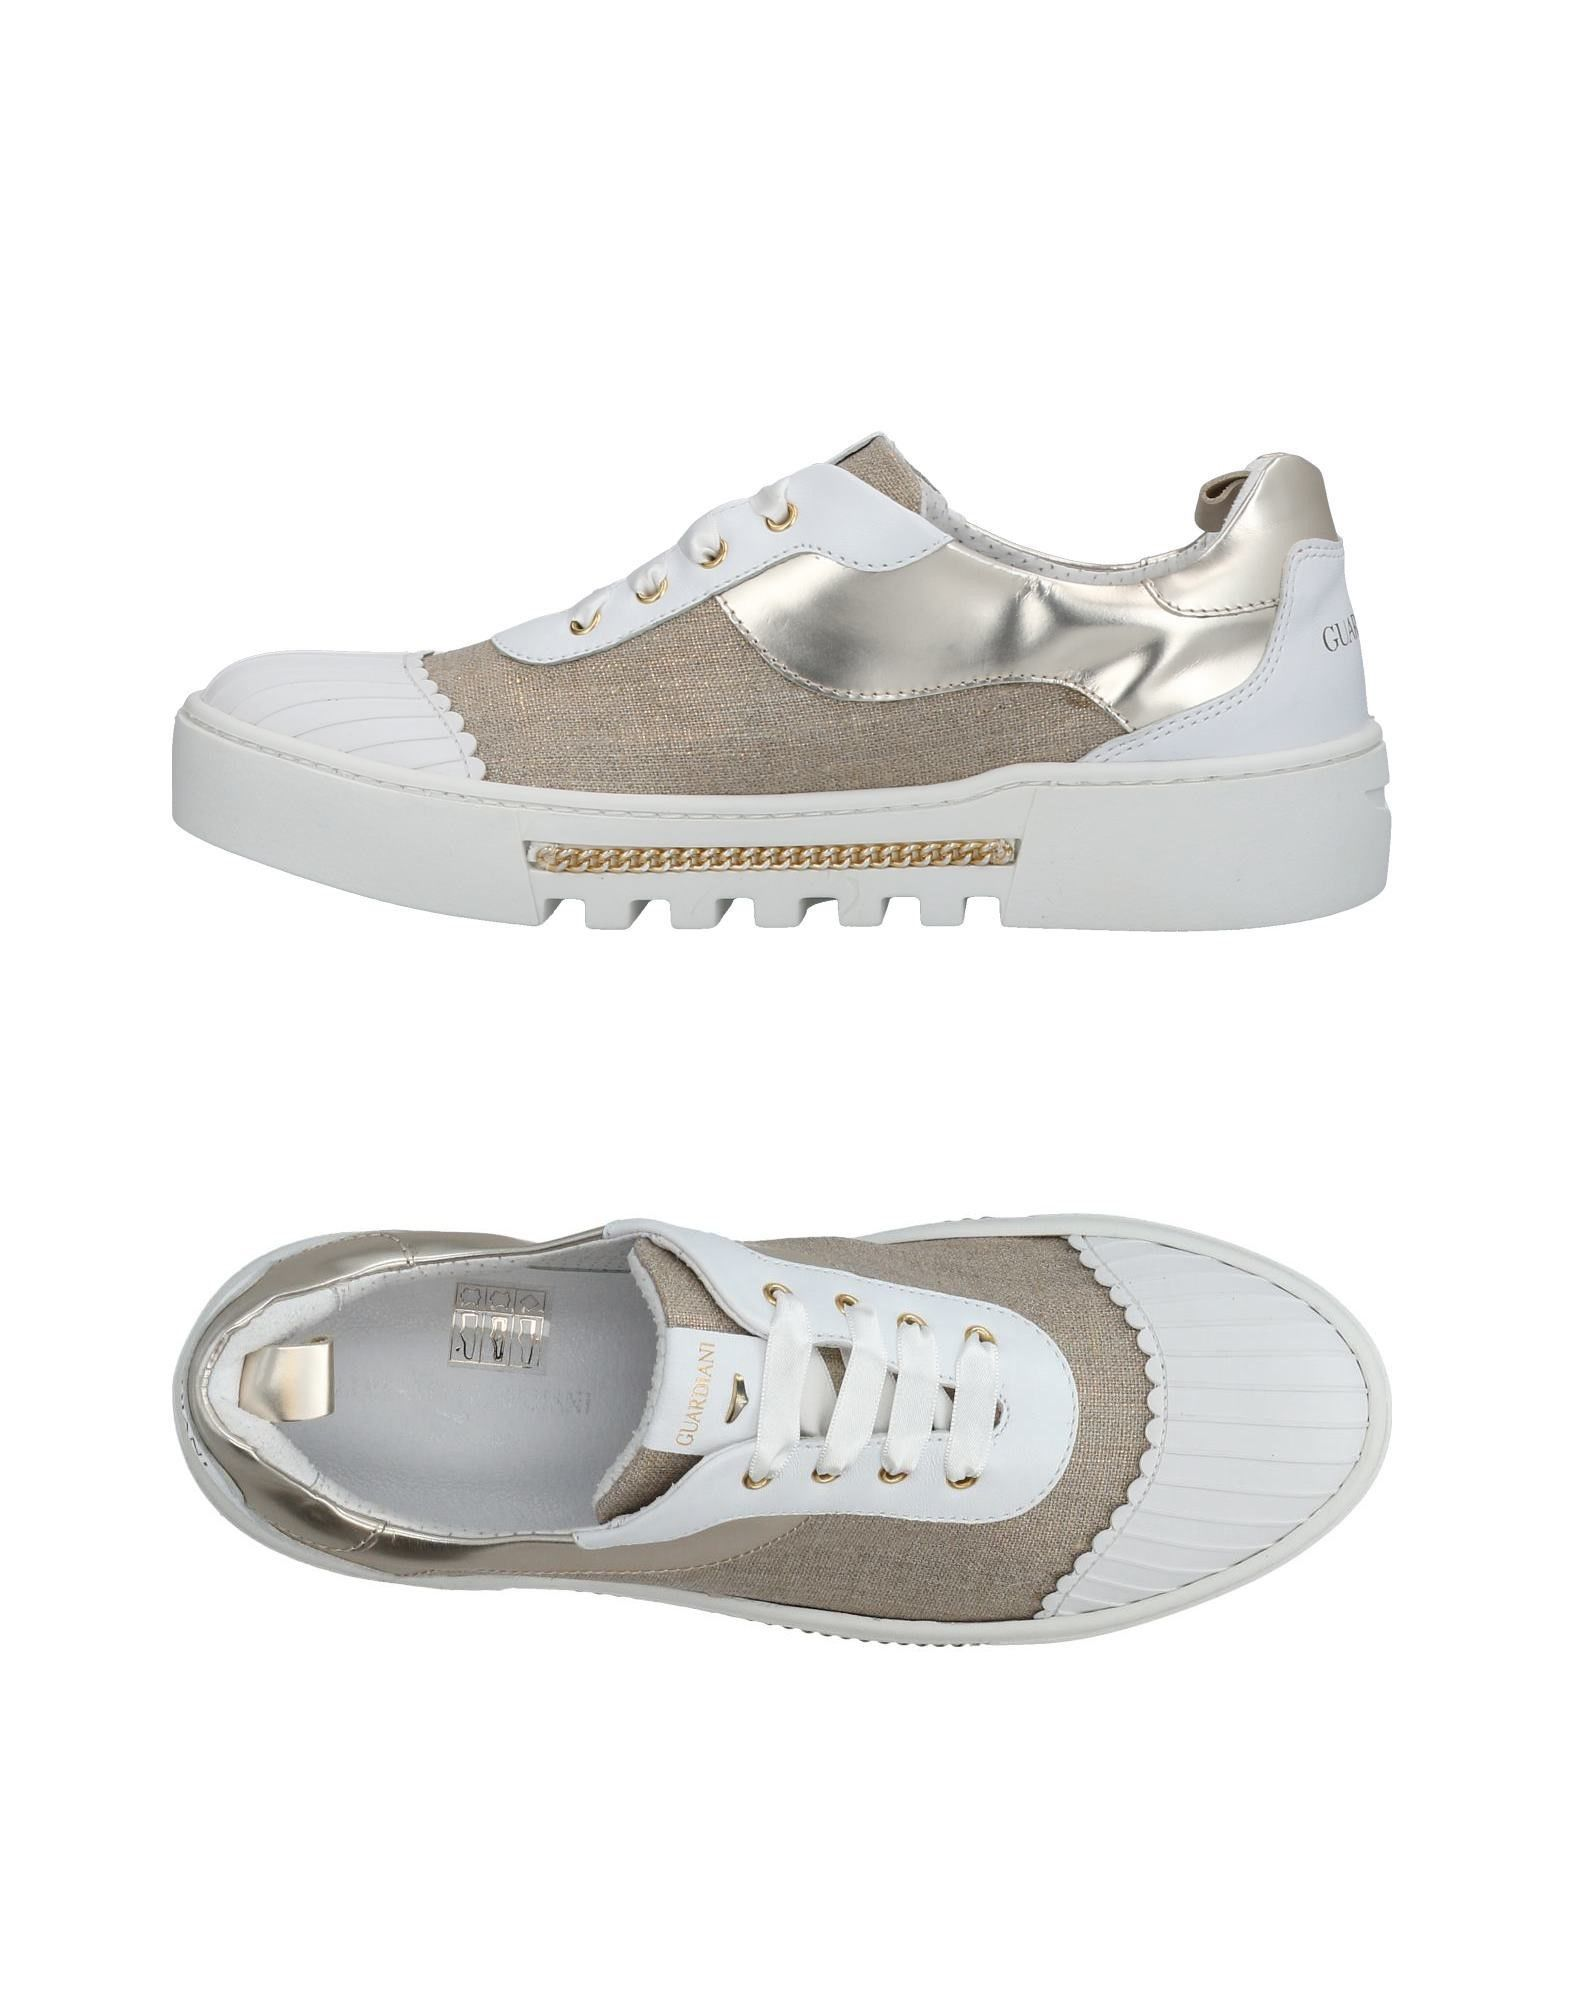 Baskets Alberto Guardiani Femme - Baskets Alberto Guardiani Blanc Dédouanement saisonnier